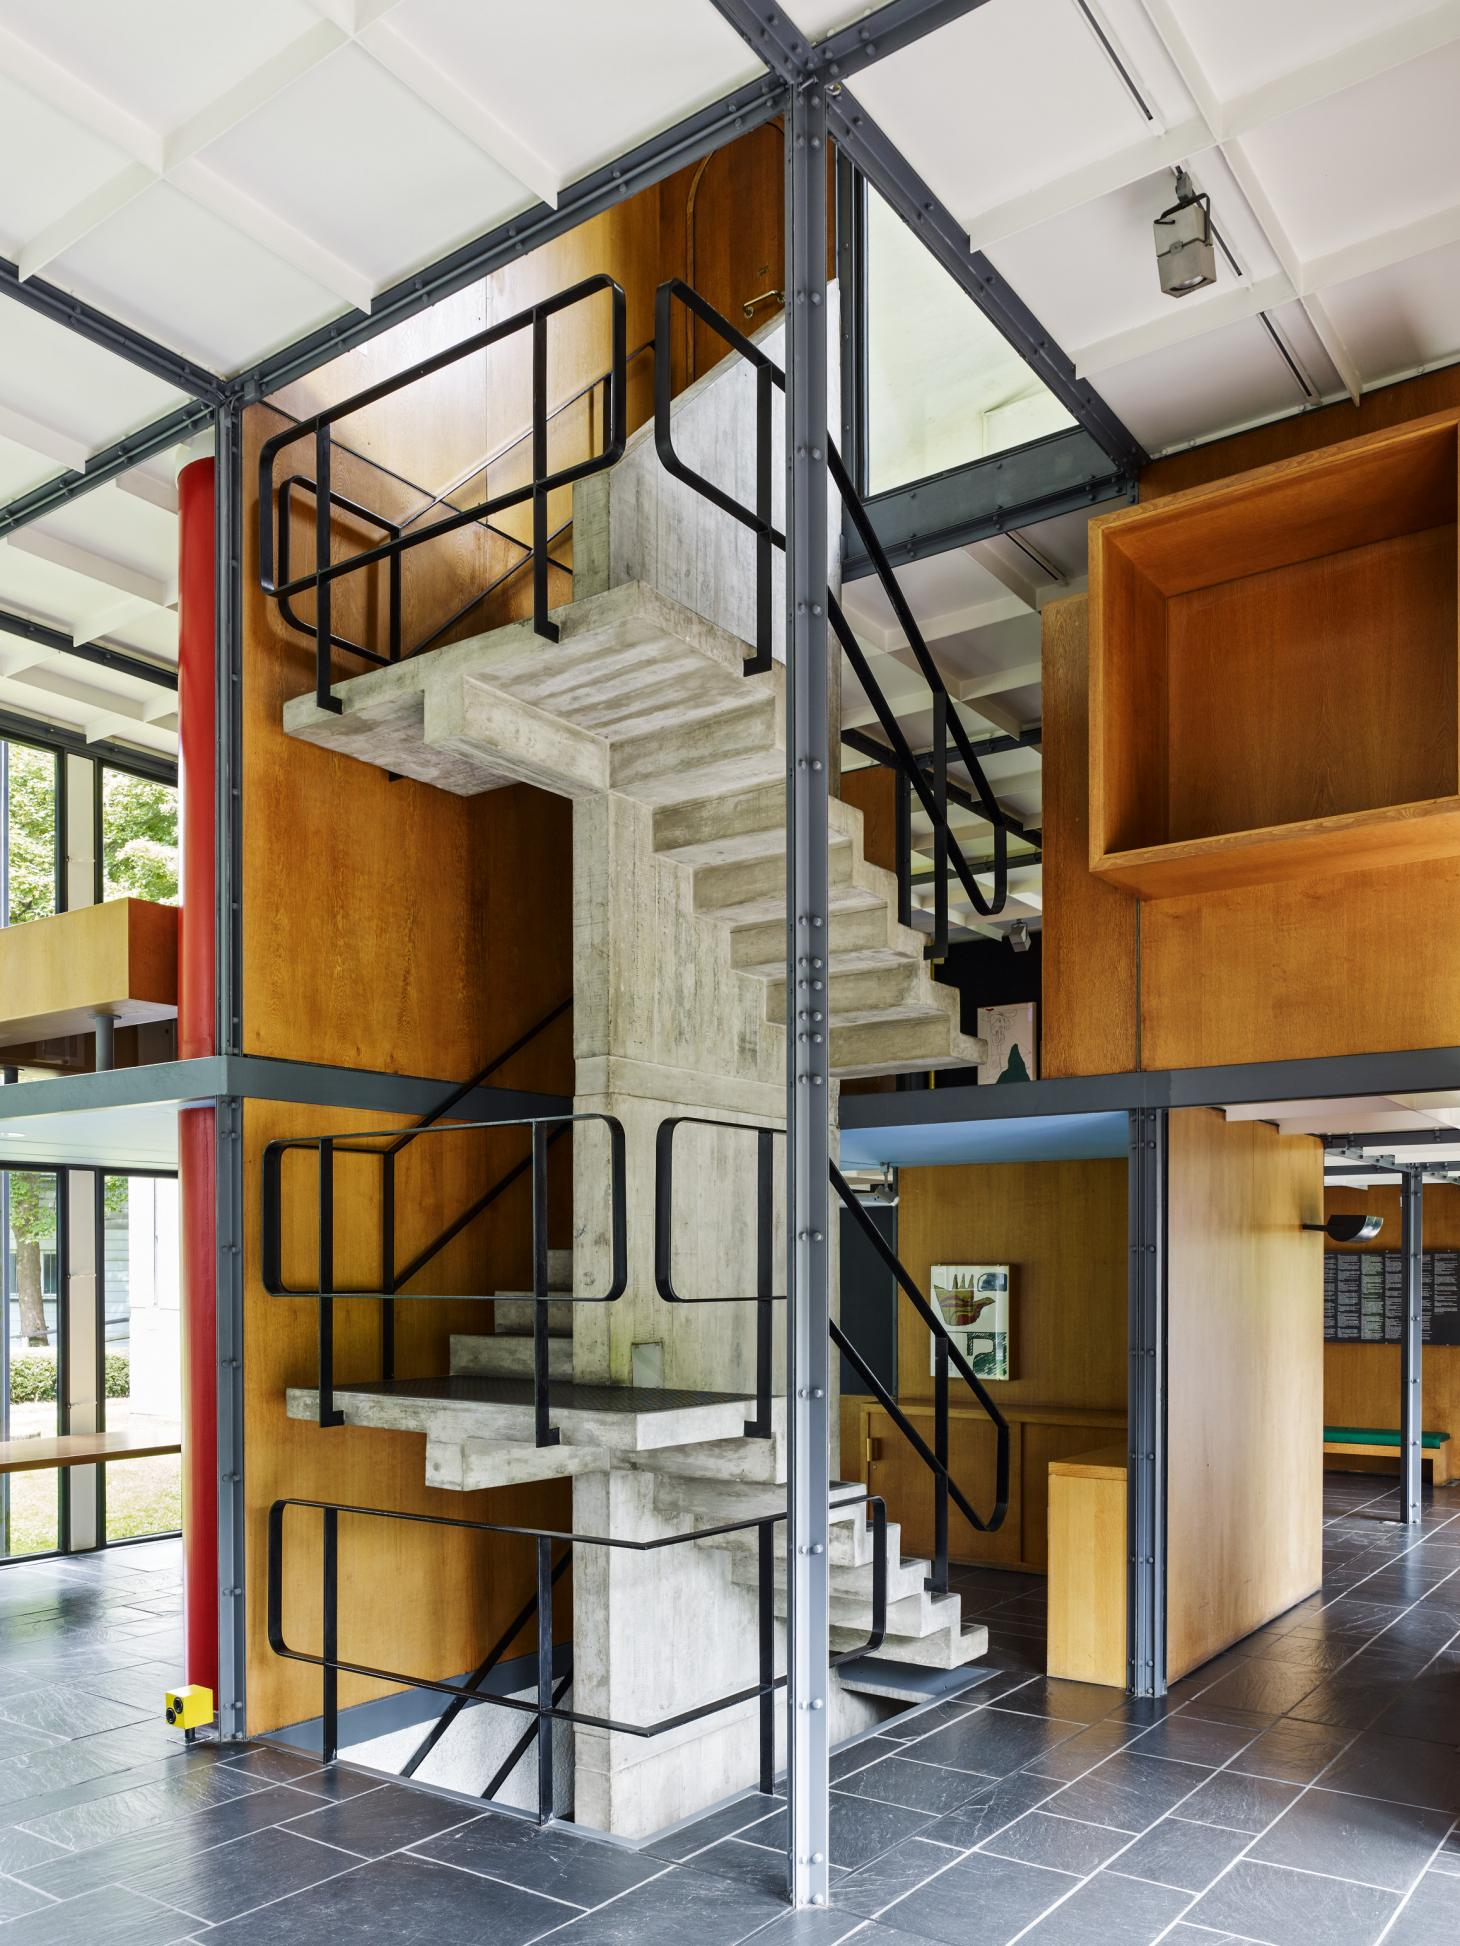 Pavilion Le Corbusier reopens after renovation in Zurich ...